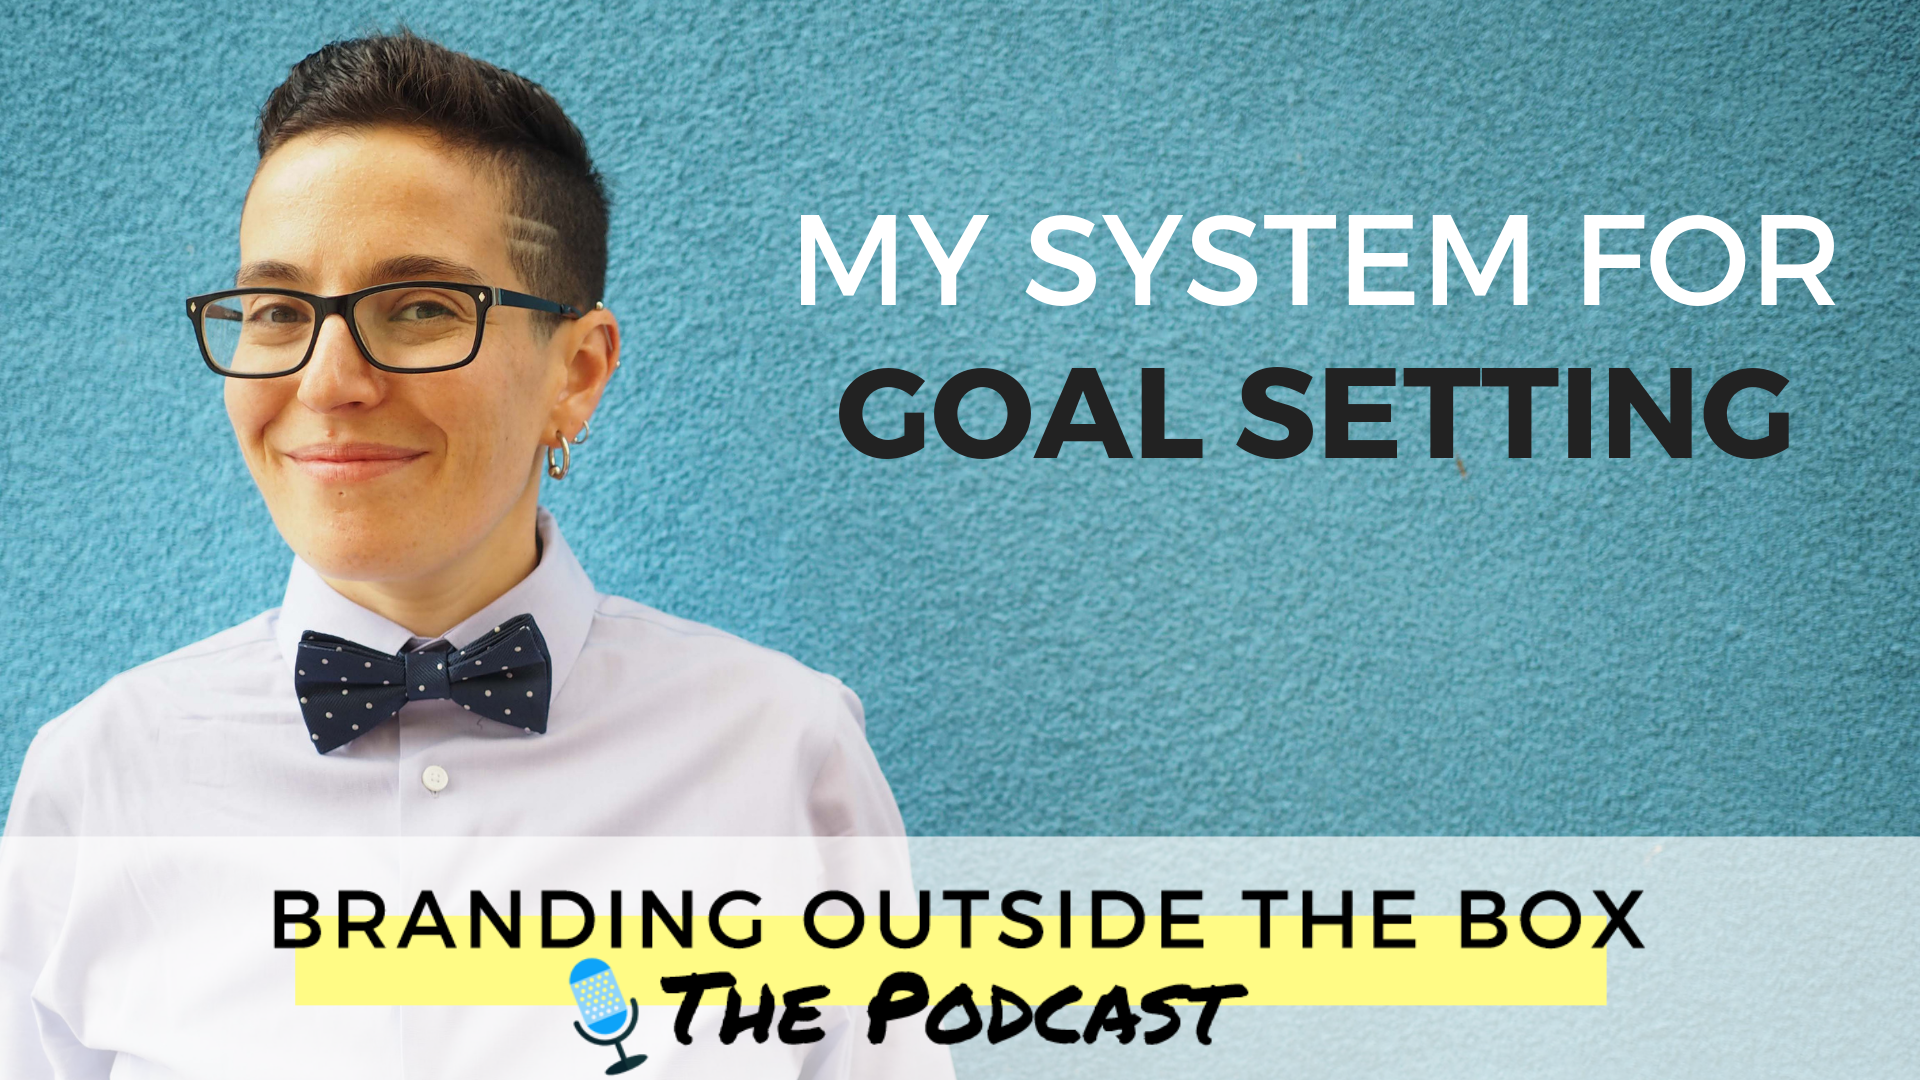 My System for Goal Setting